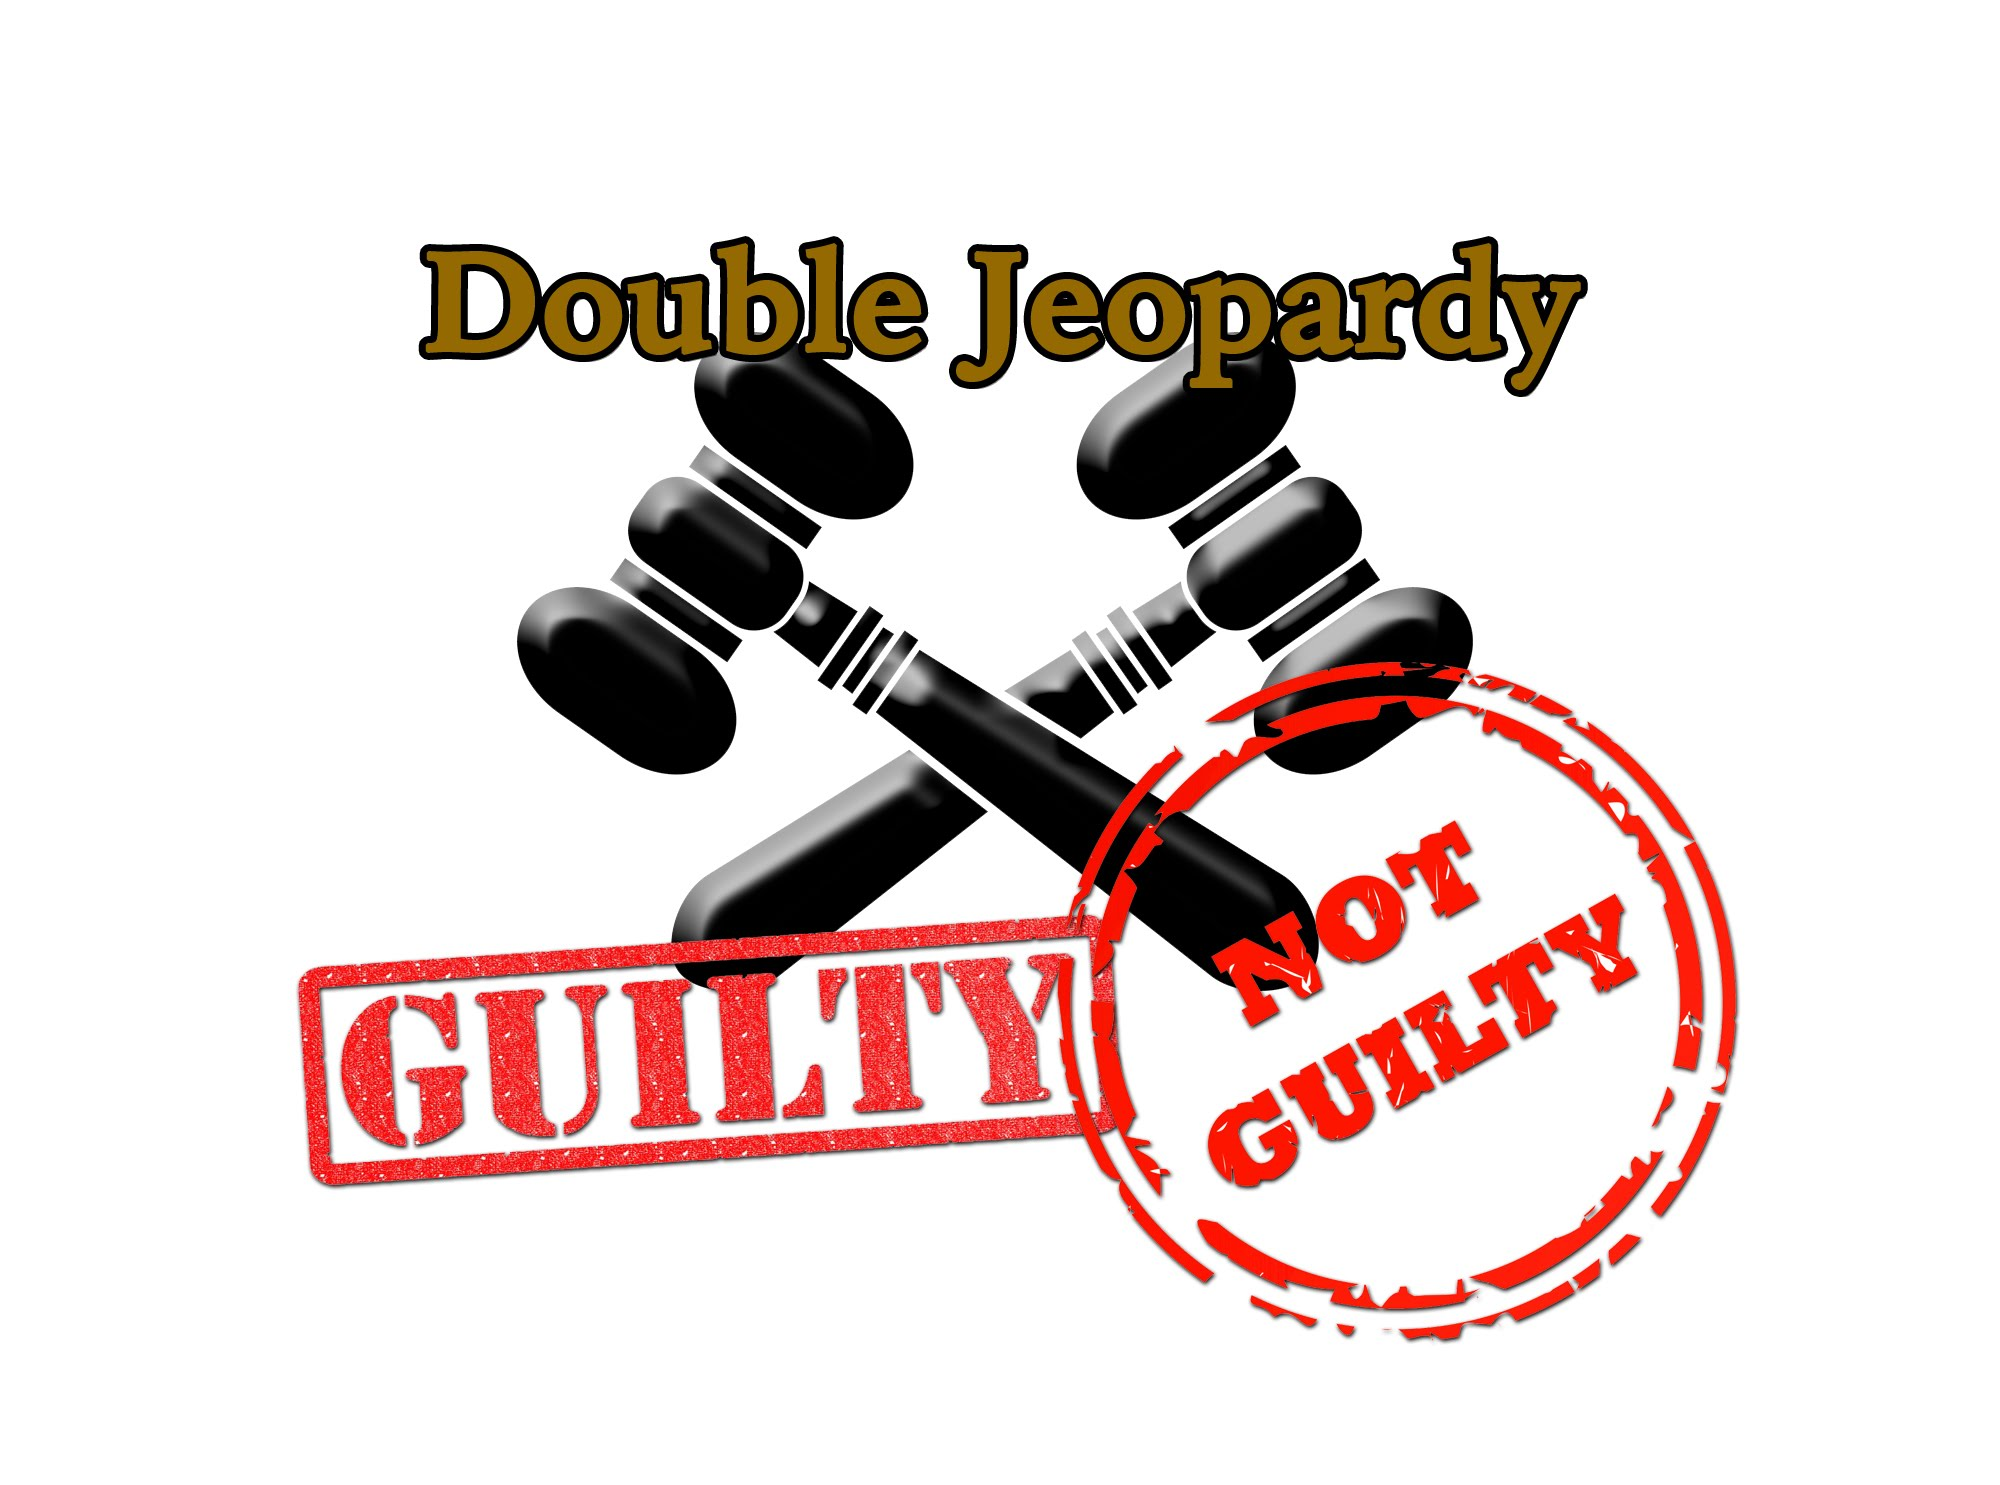 Double jeopardy image transparent download Double jeopardy - ClipartFest image transparent download